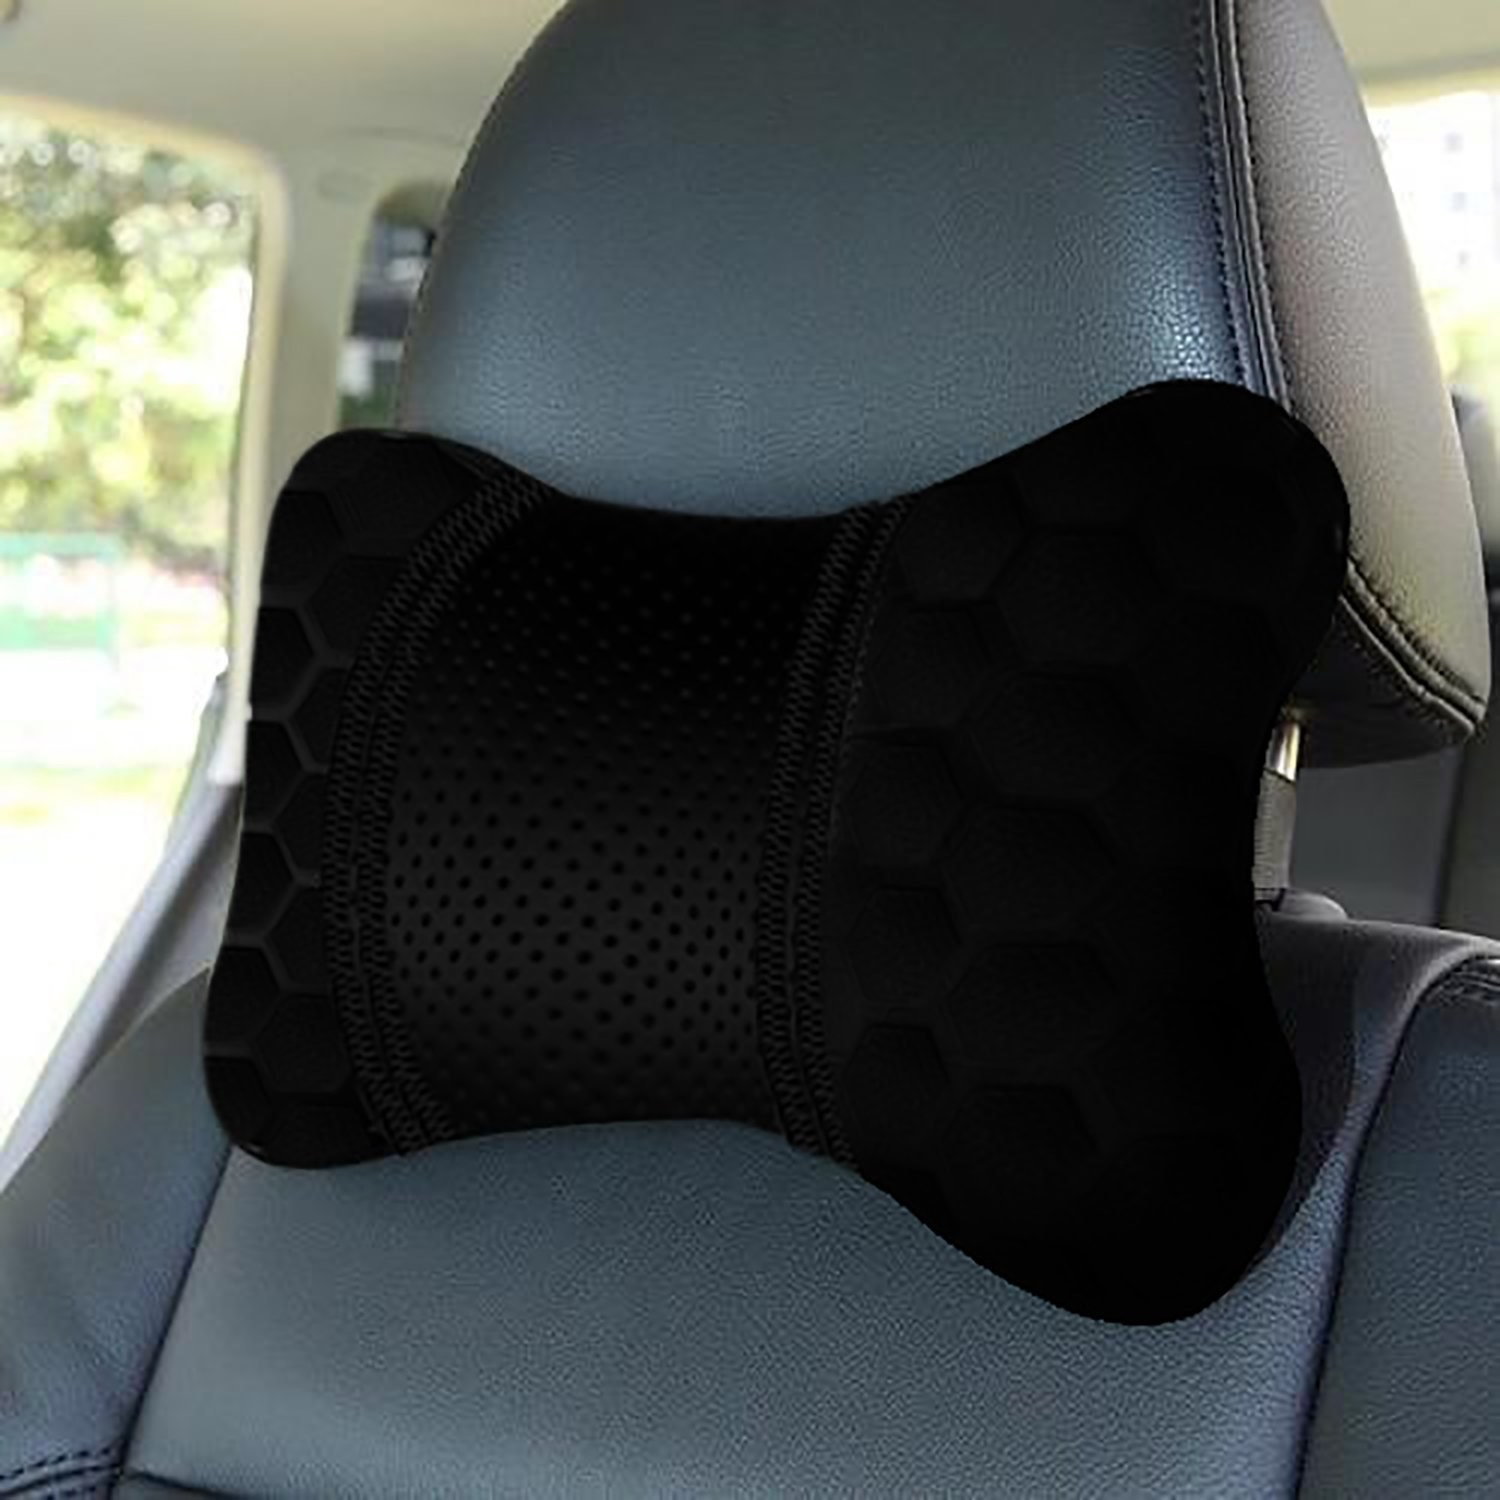 A neck pillow on the front seat of the car.